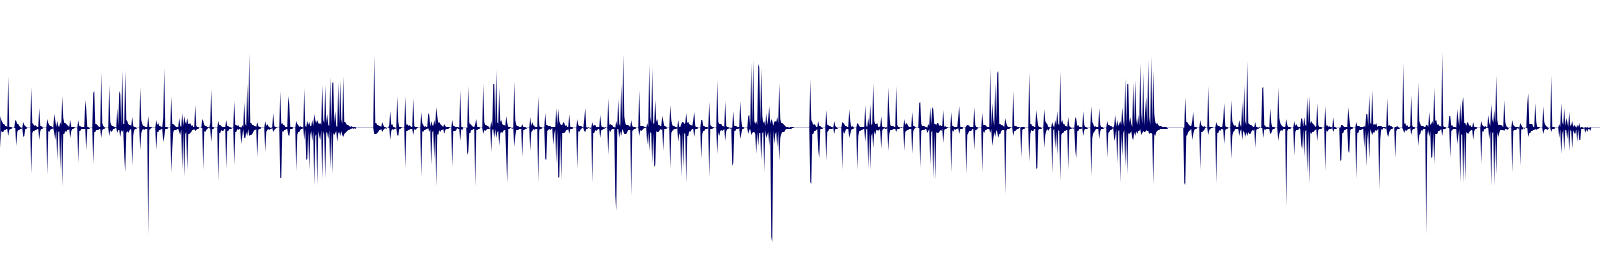 waveform of track #133288